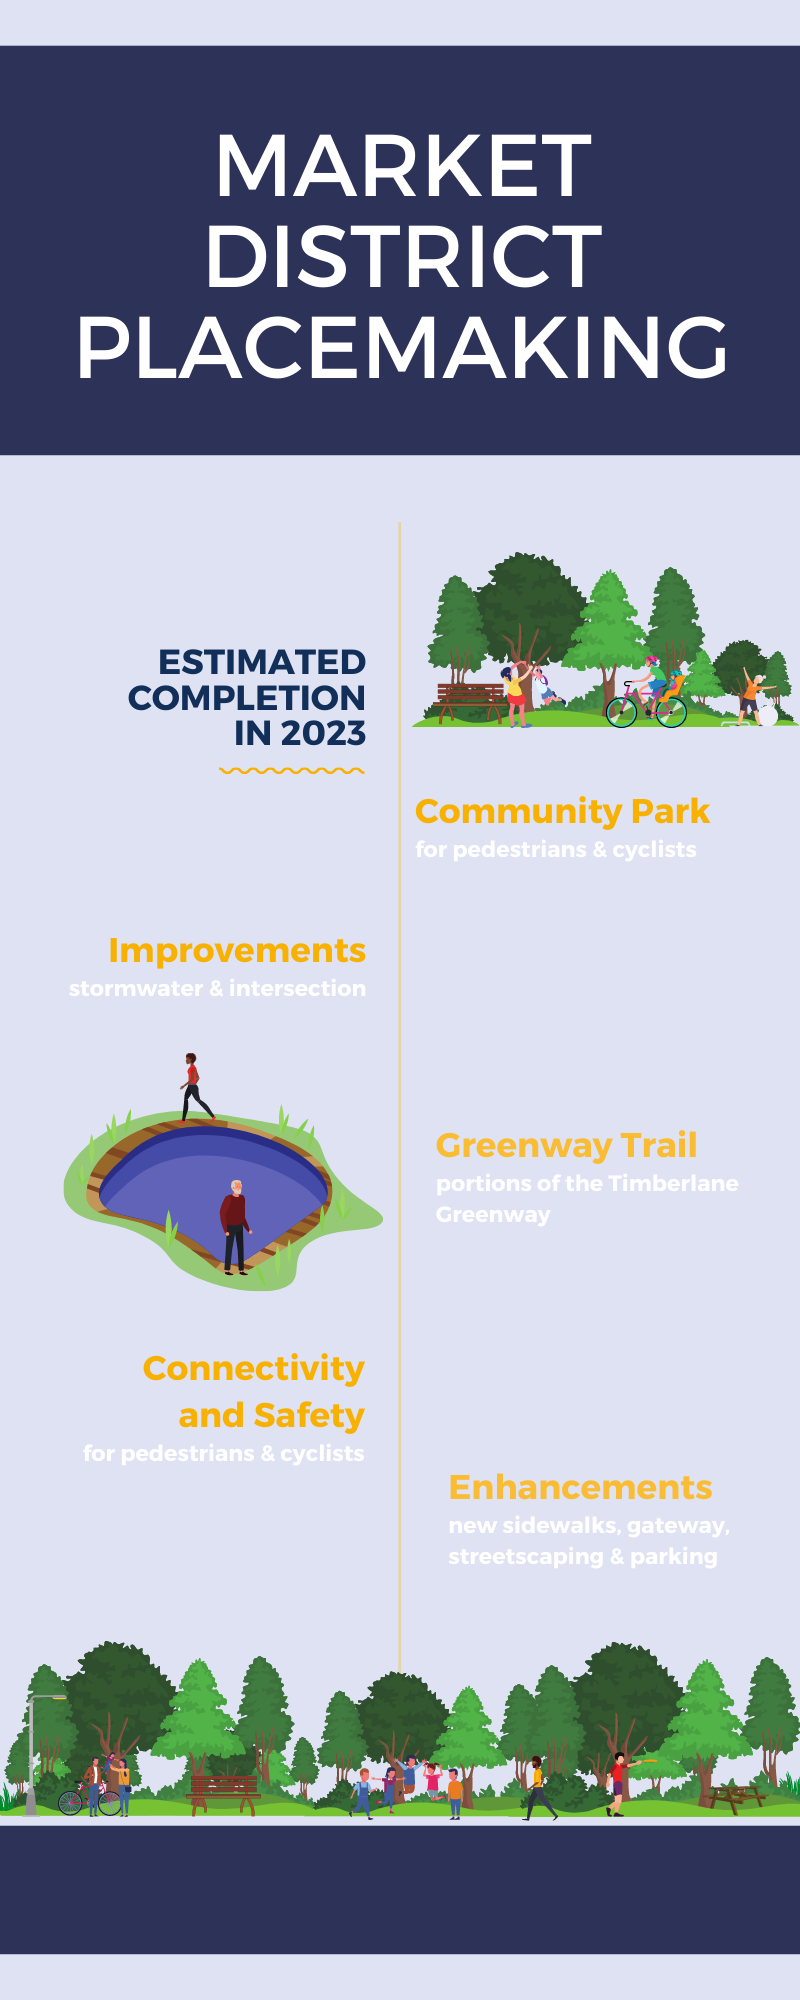 market district placemaking info graphic